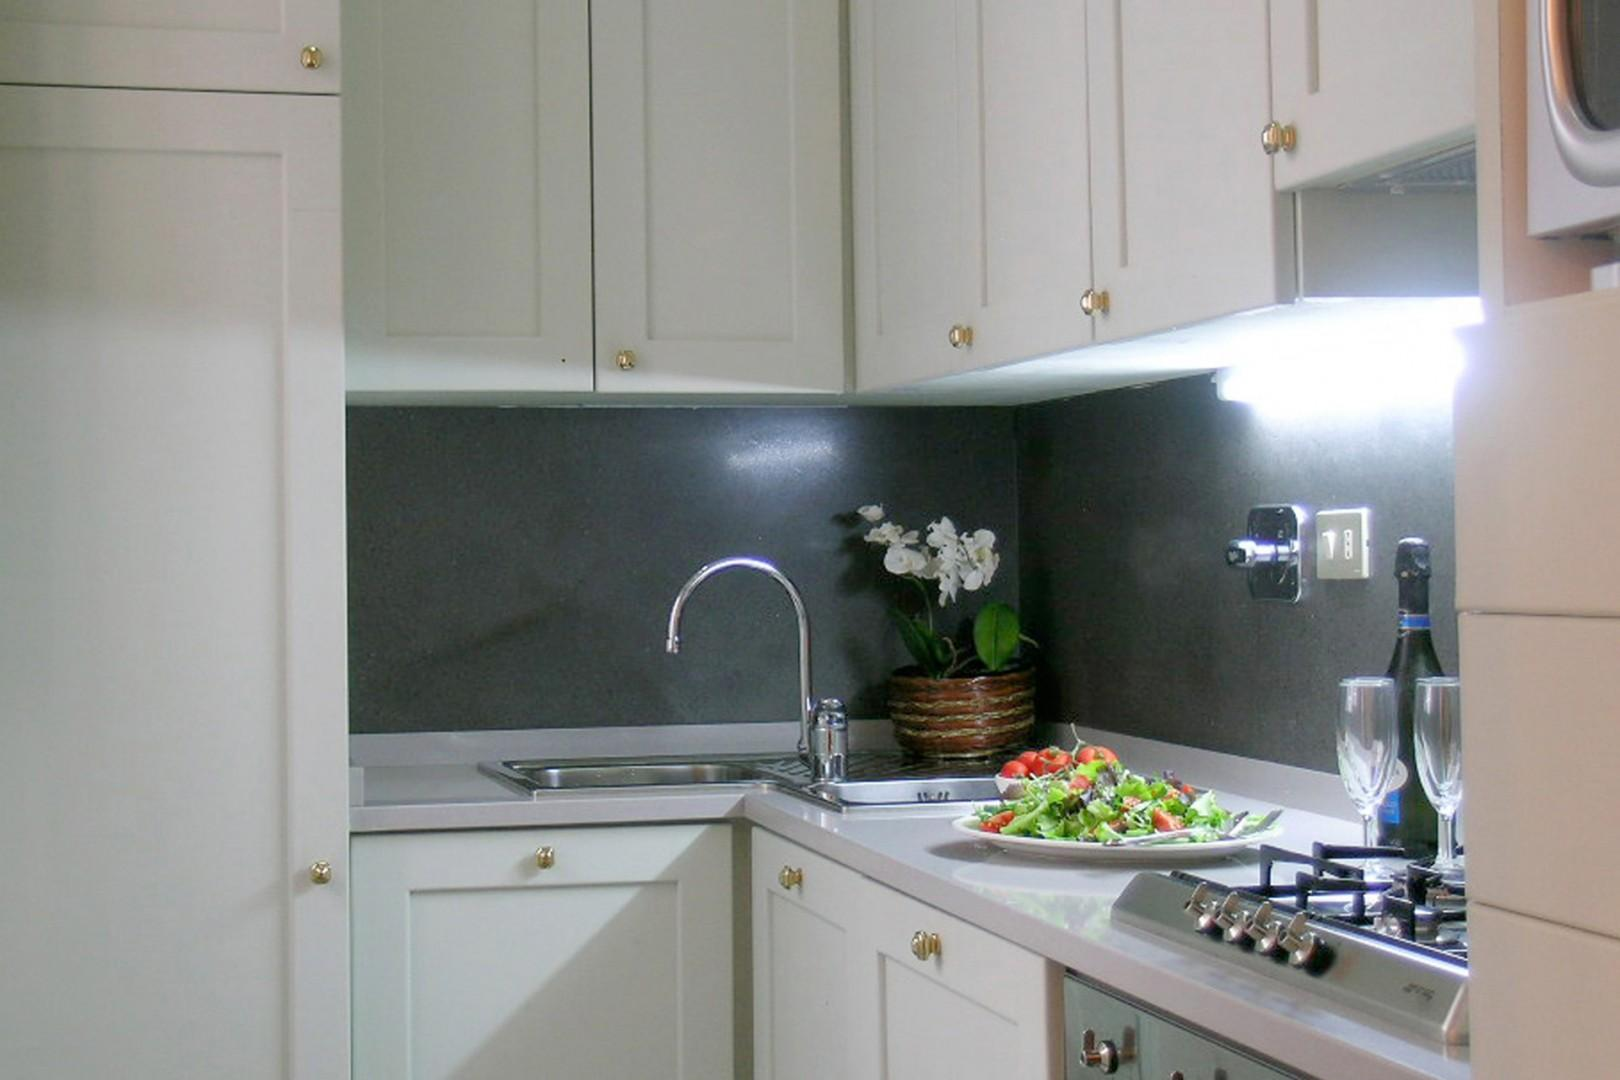 A modern kitchen glistens with microwave, oven, four burner stovetop and dishwasher.